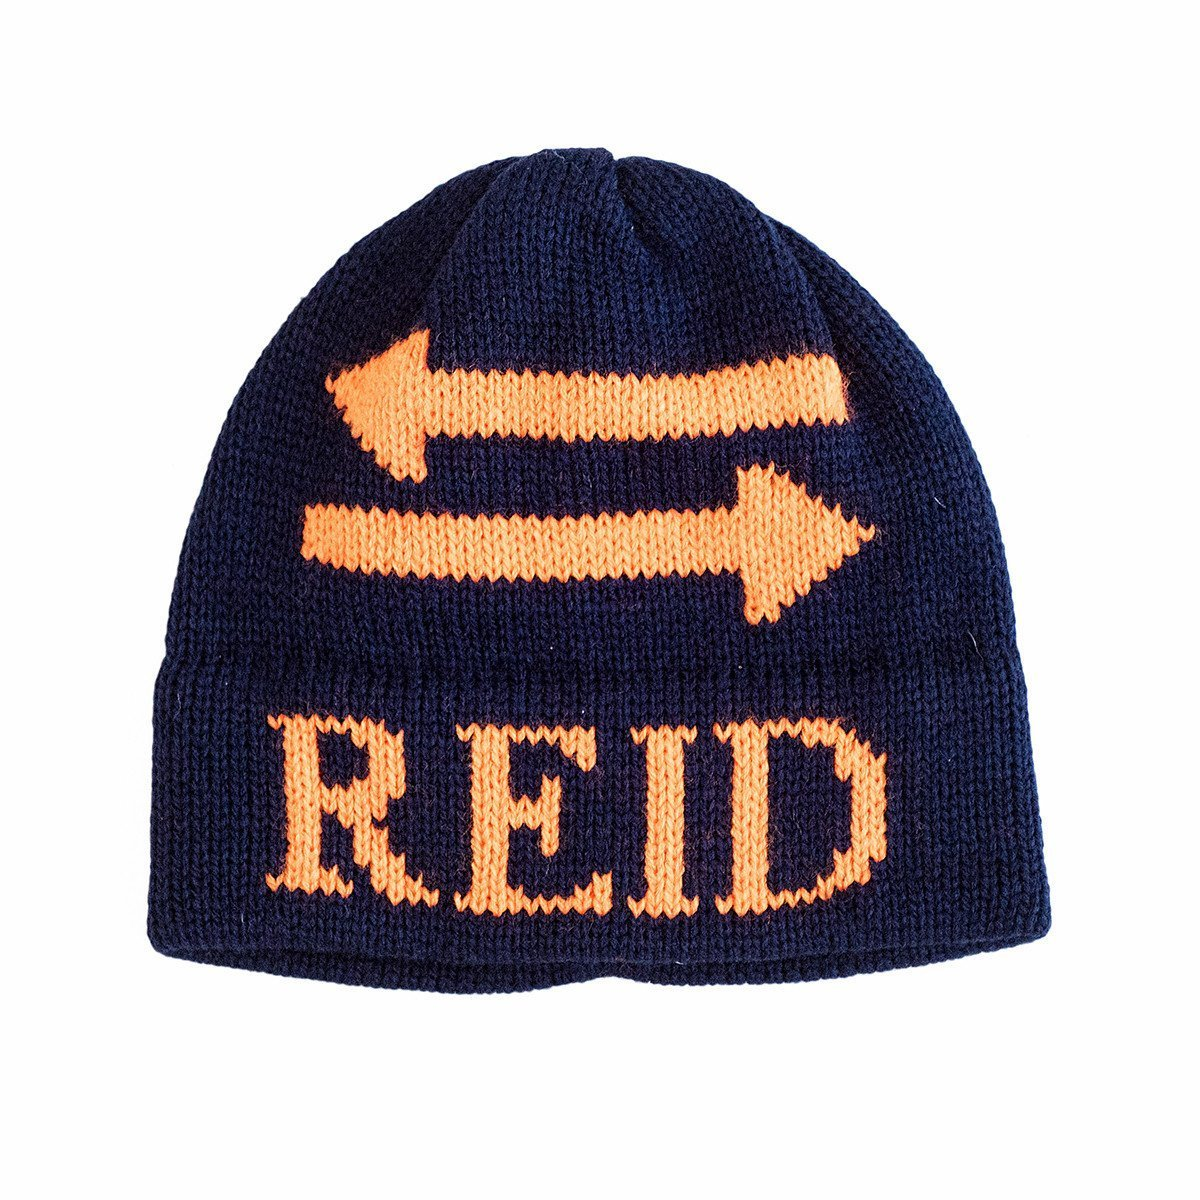 Double Arrow Personalized Knit Hat-Hats-Jack and Jill Boutique